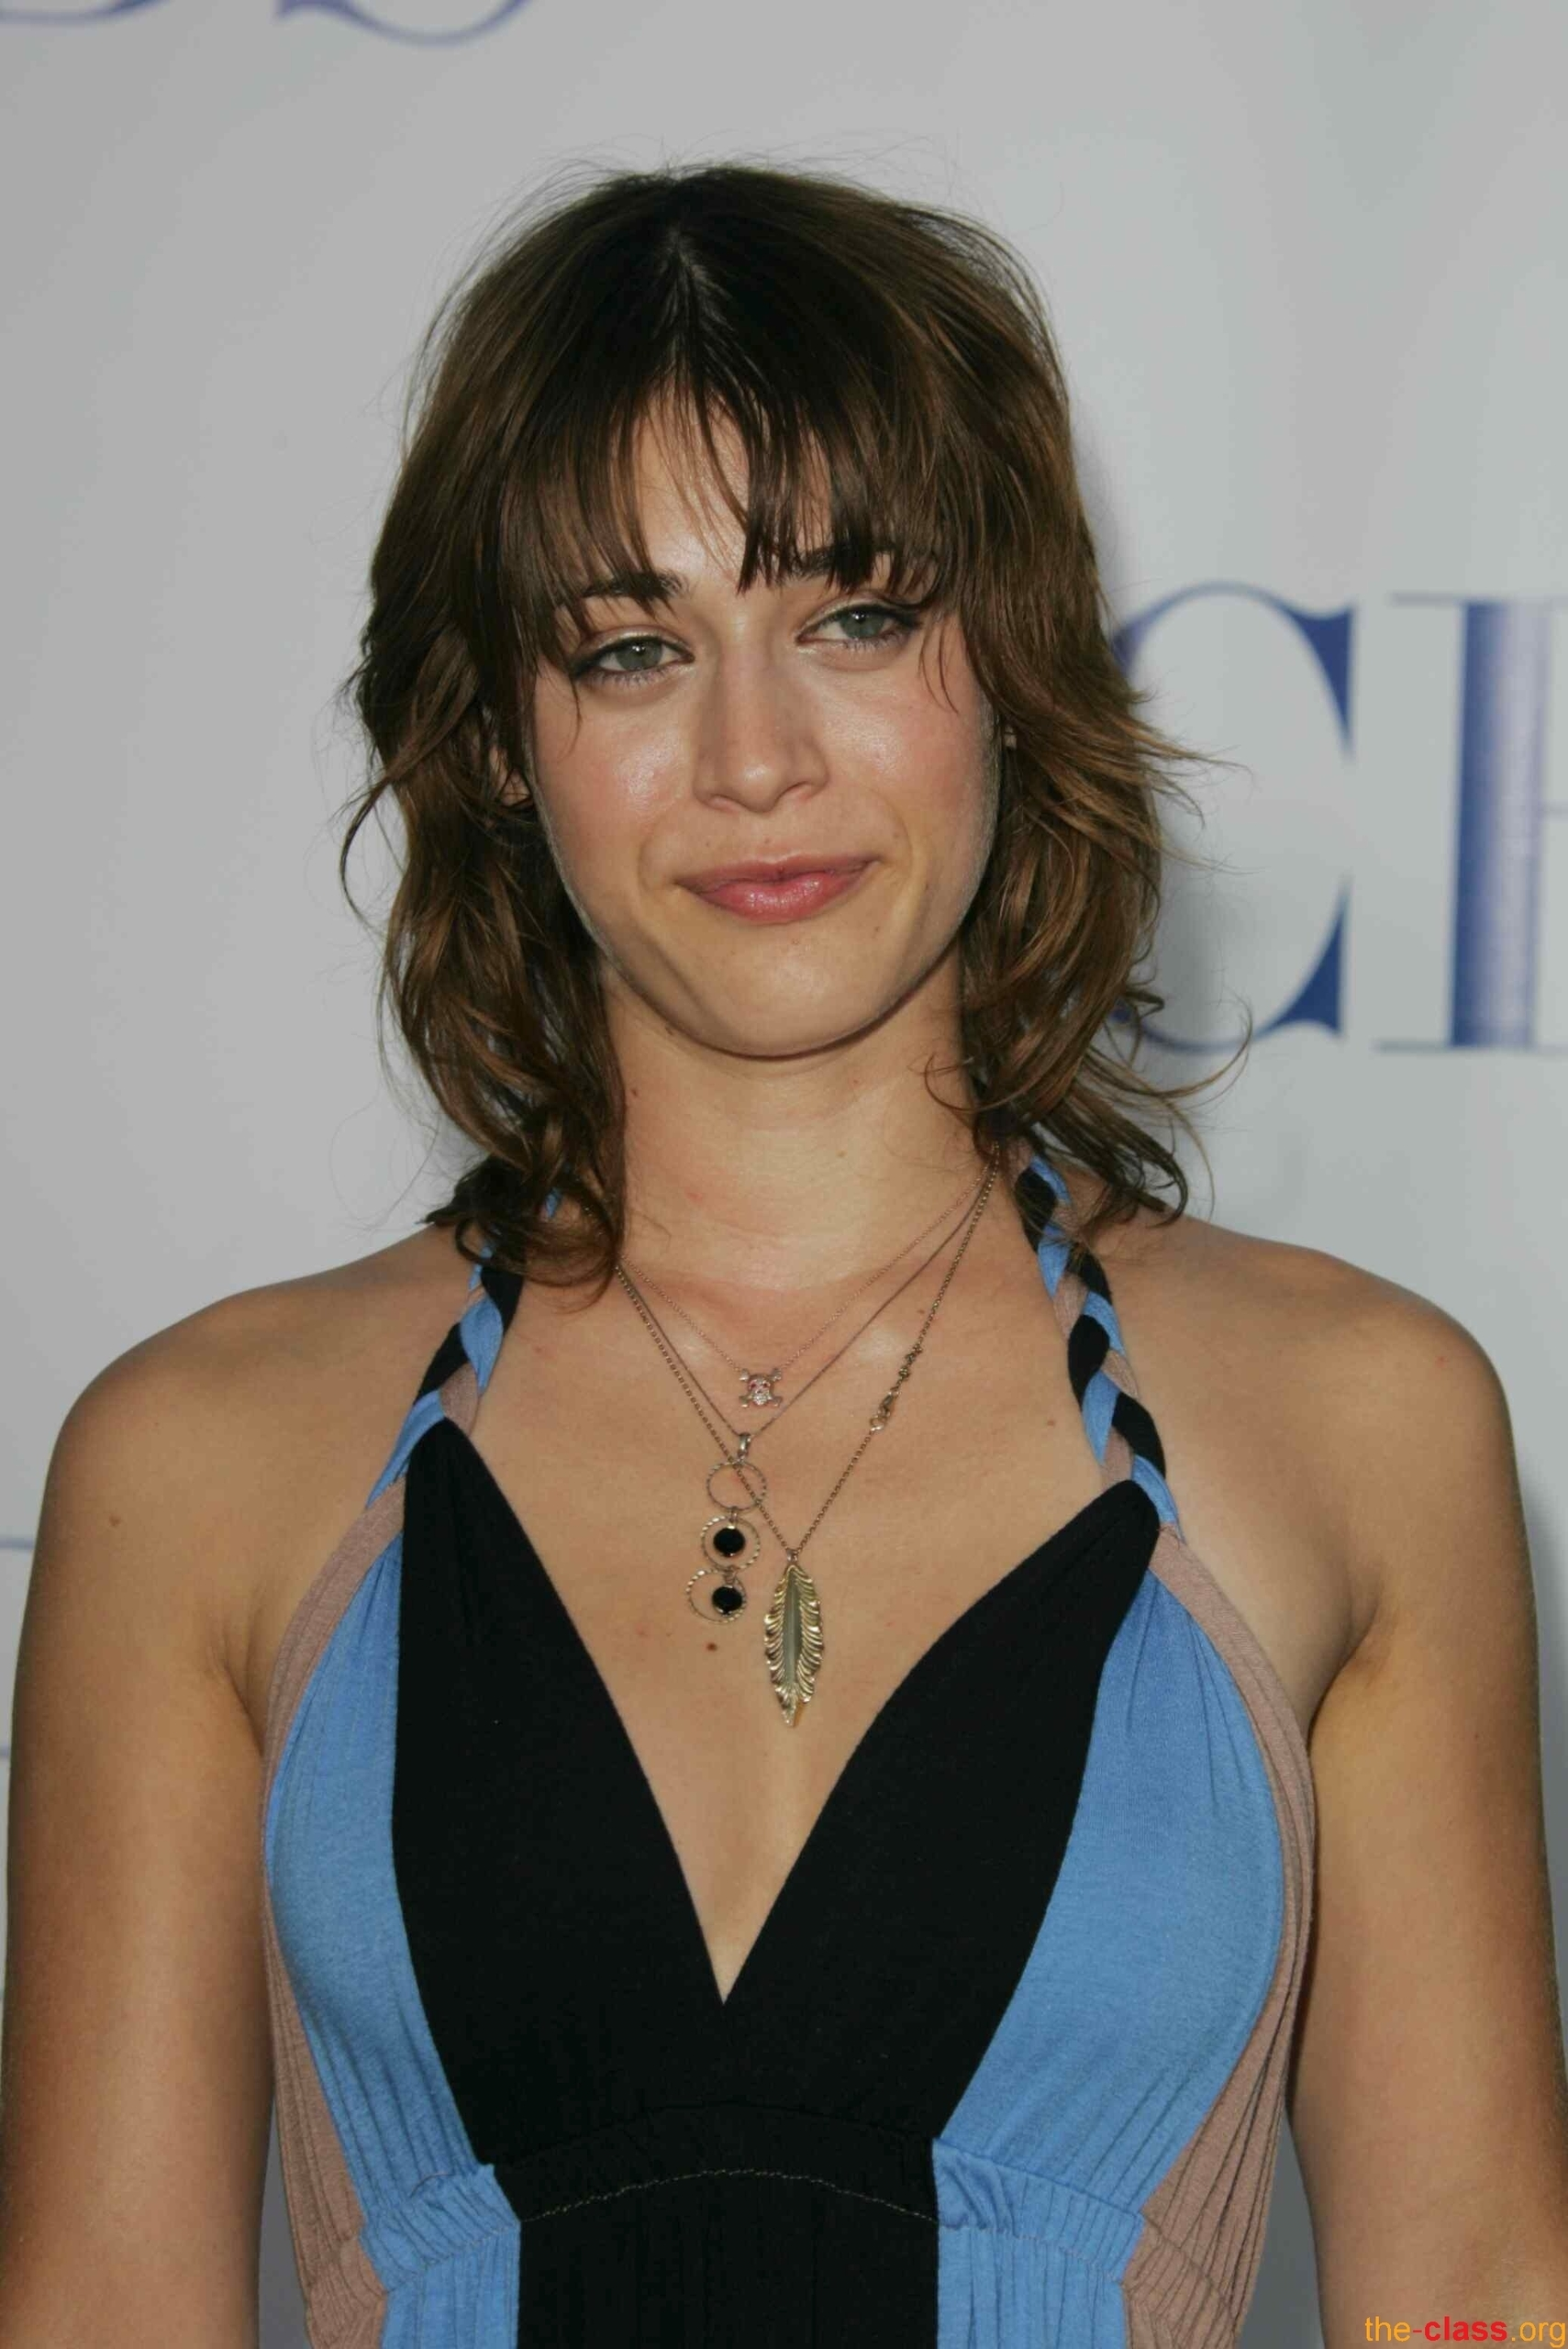 Lizzy Caplan Images Lizzy HD Wallpaper And Background